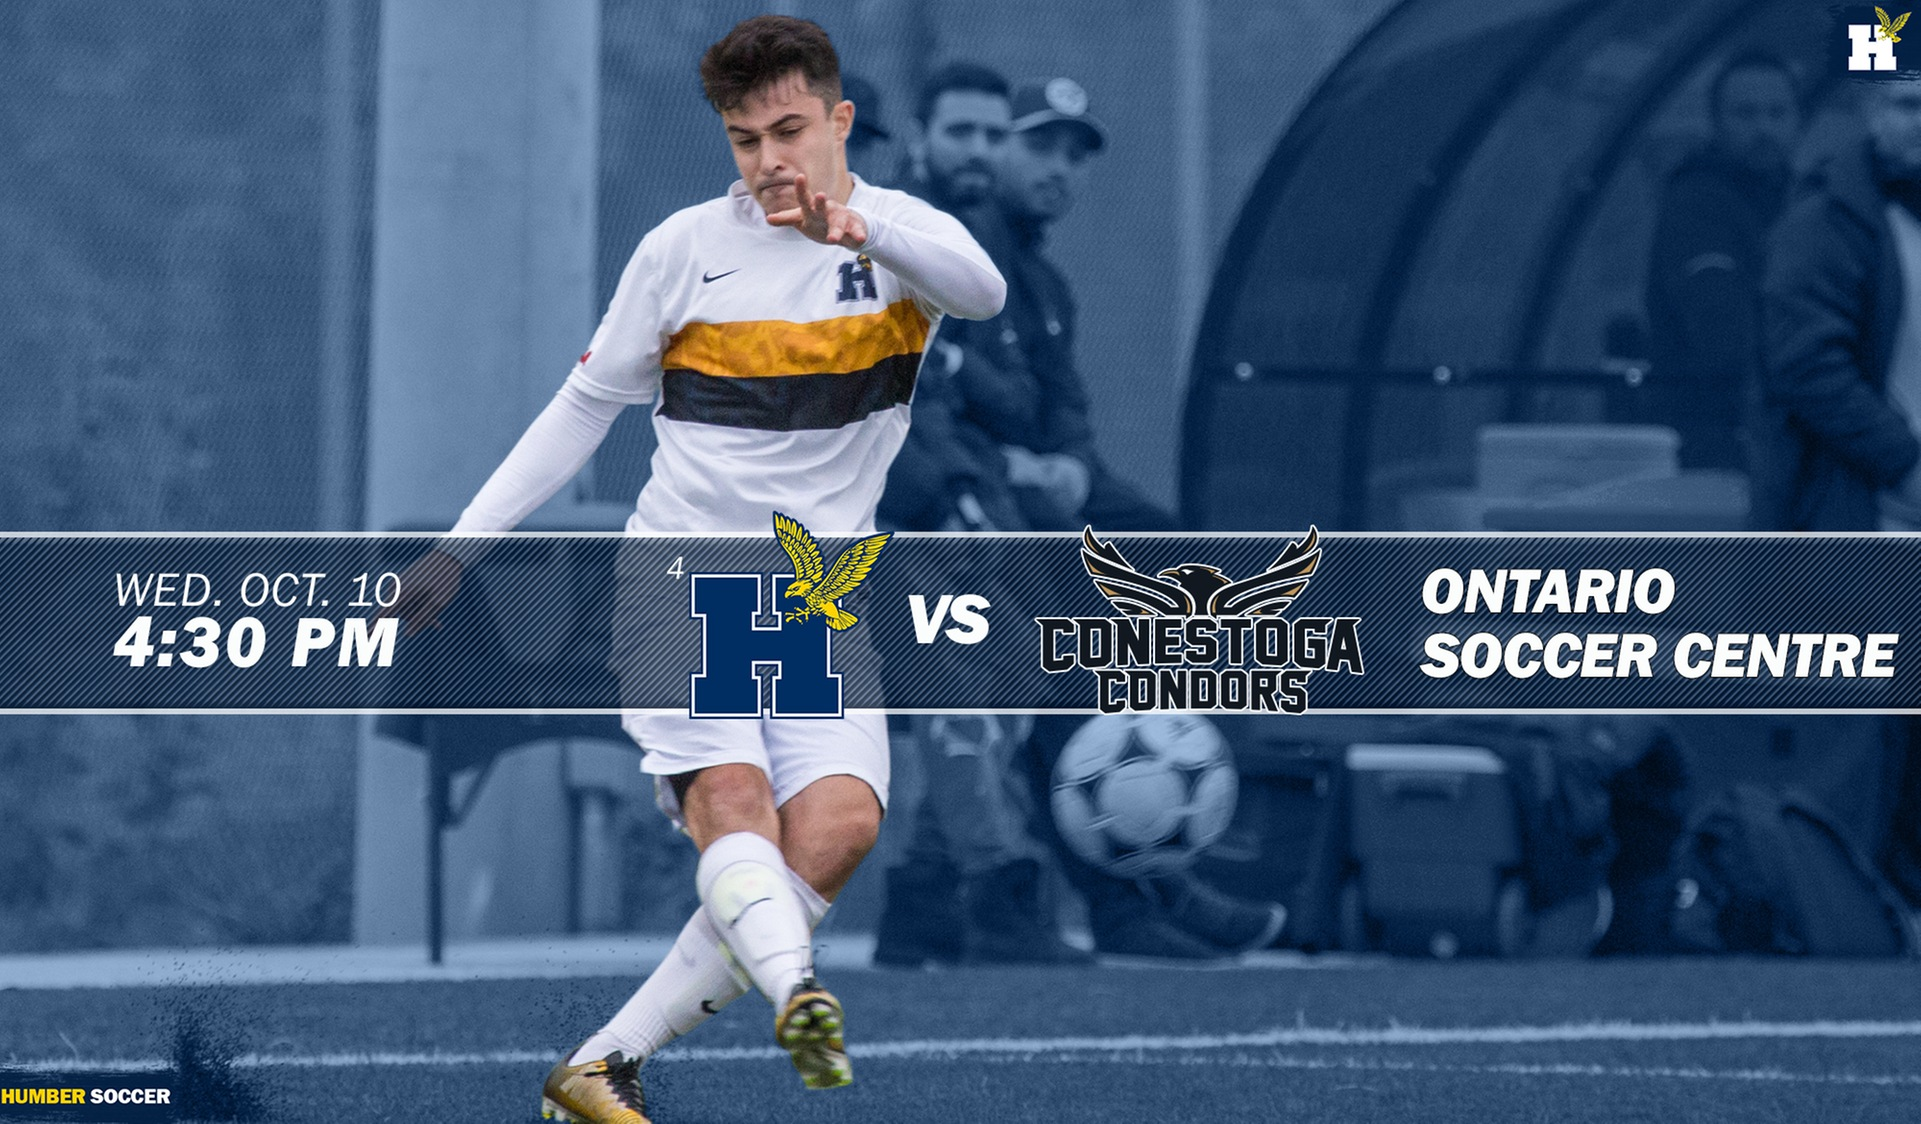 HOME SCHEDULE CONCLUDES WEDNESDAY FOR No. 4 MEN'S SOCCER